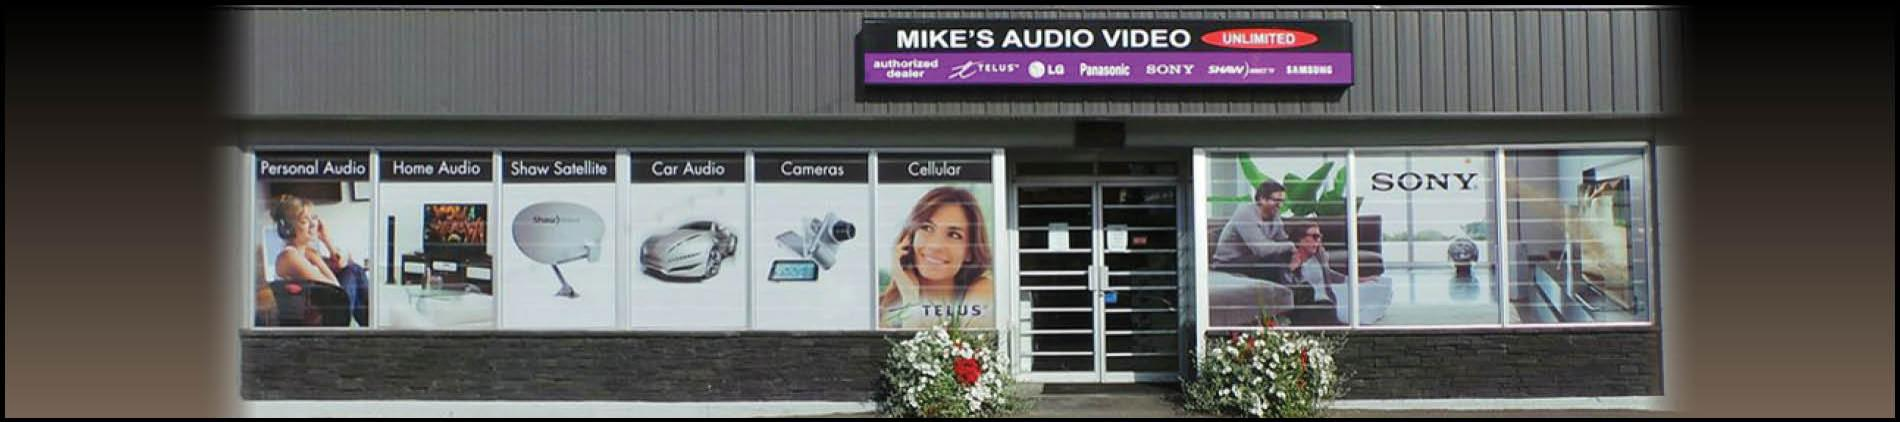 Mikes Audio Video Unlimited store location